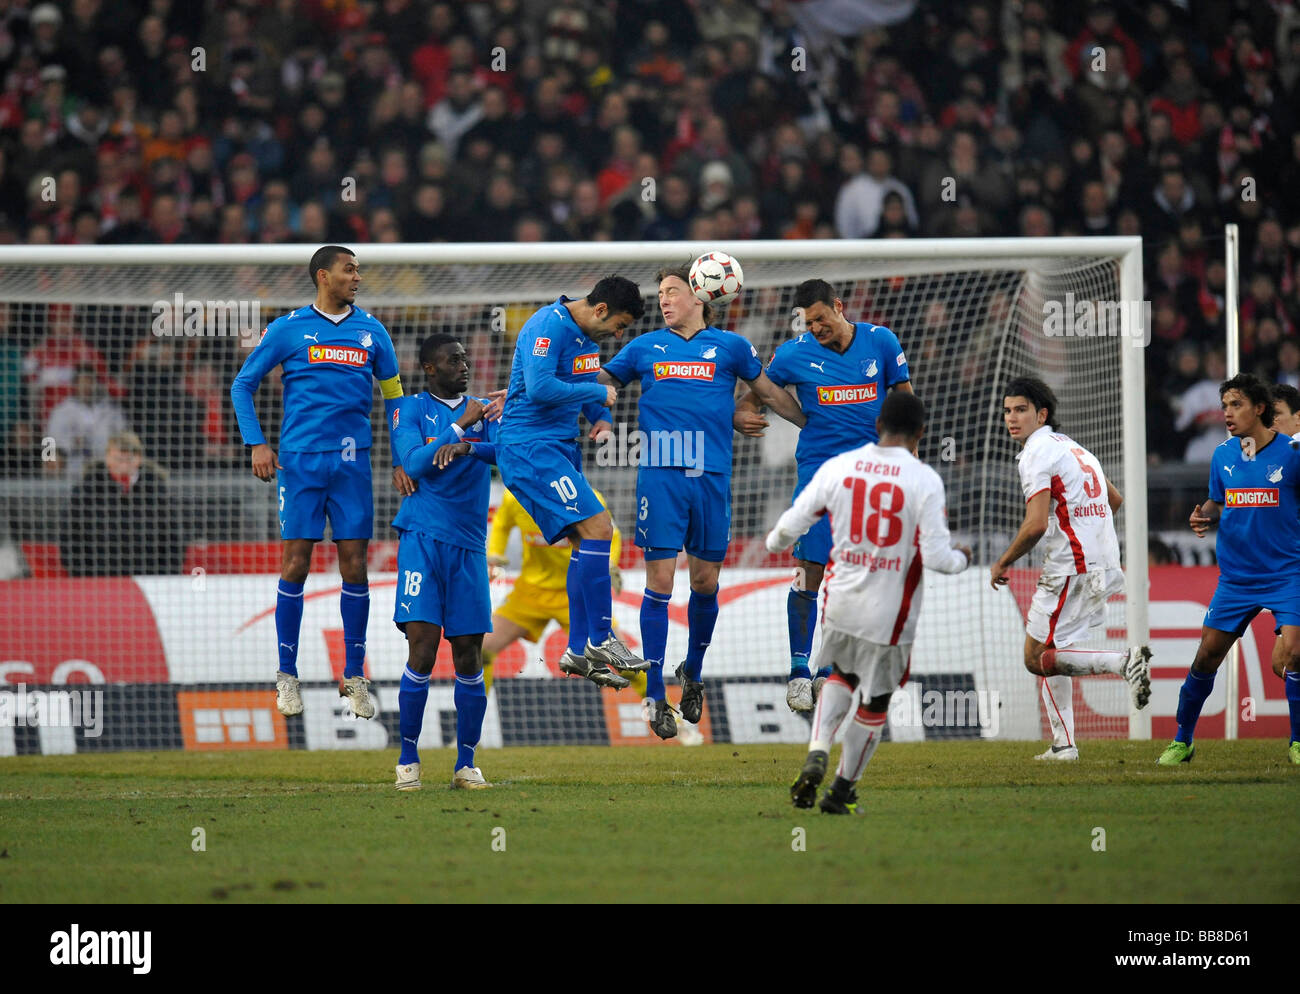 Penalty kick by Cacau, VfB Stuttgart, from left to right, Isaac Vorsah, Boubacar Sanogo, Selim Teber, Matthias Jessle, - Stock Image